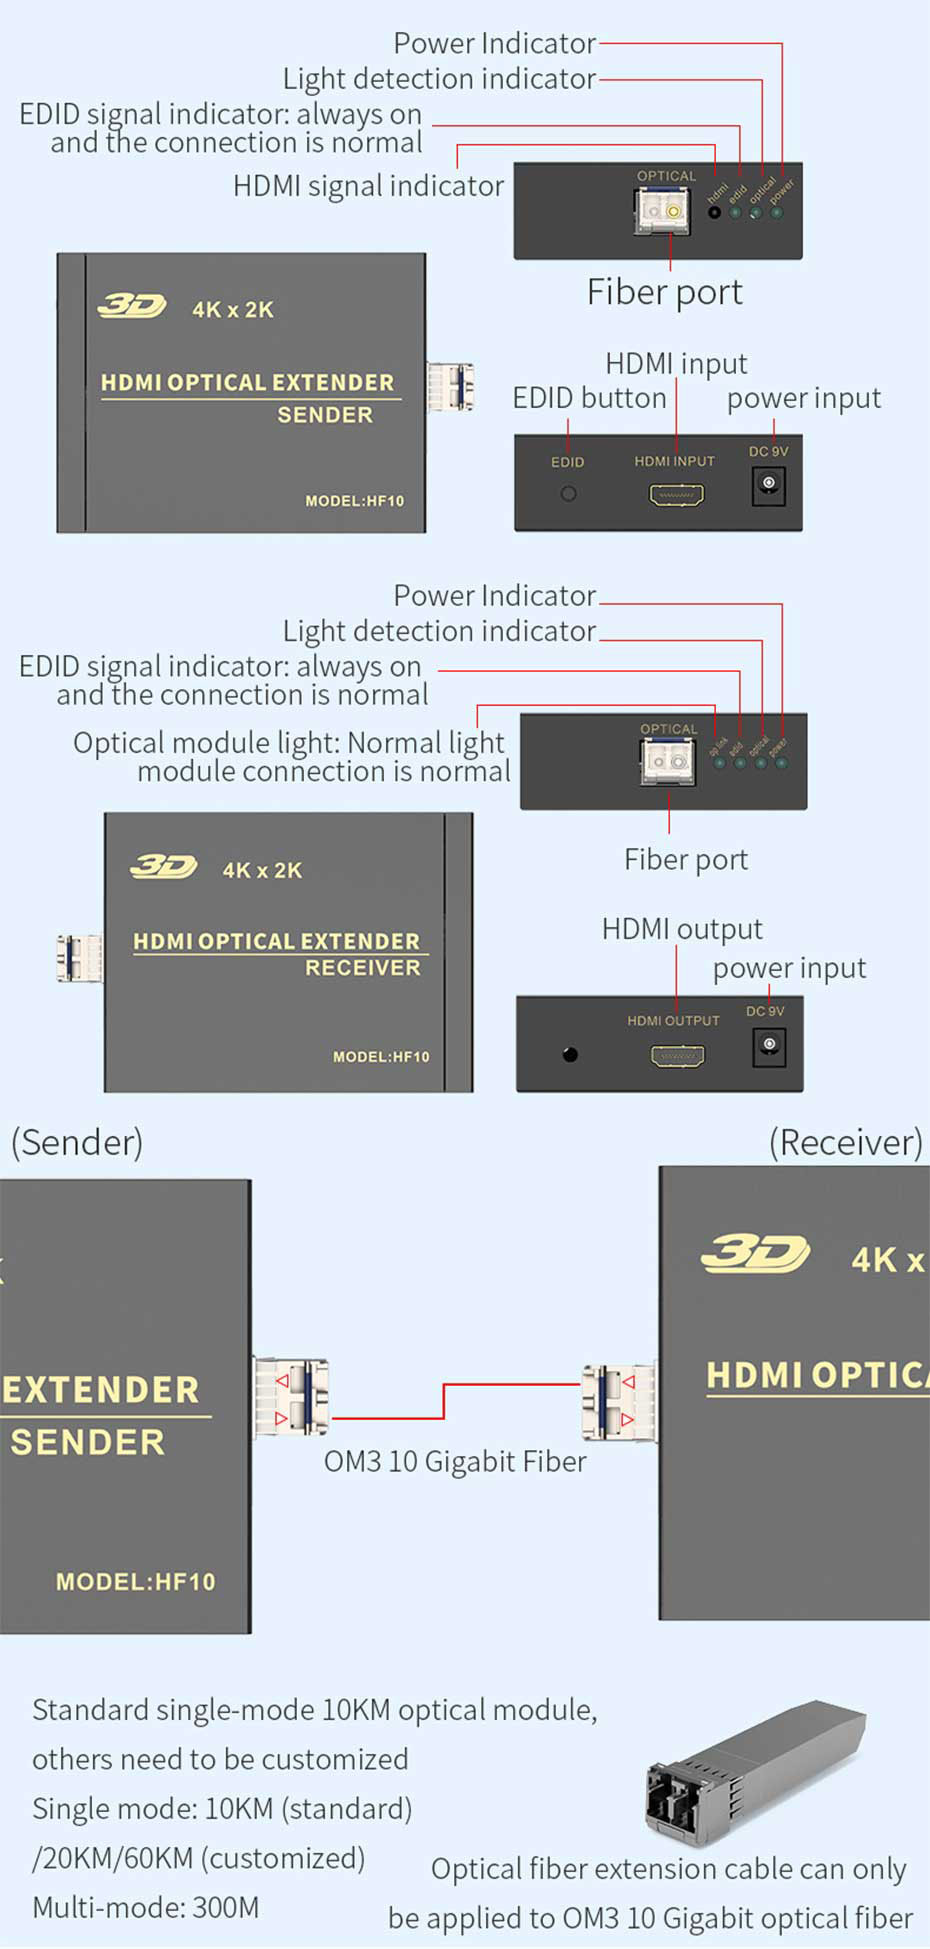 4K HDMI fiber optic extender HF10 interface description